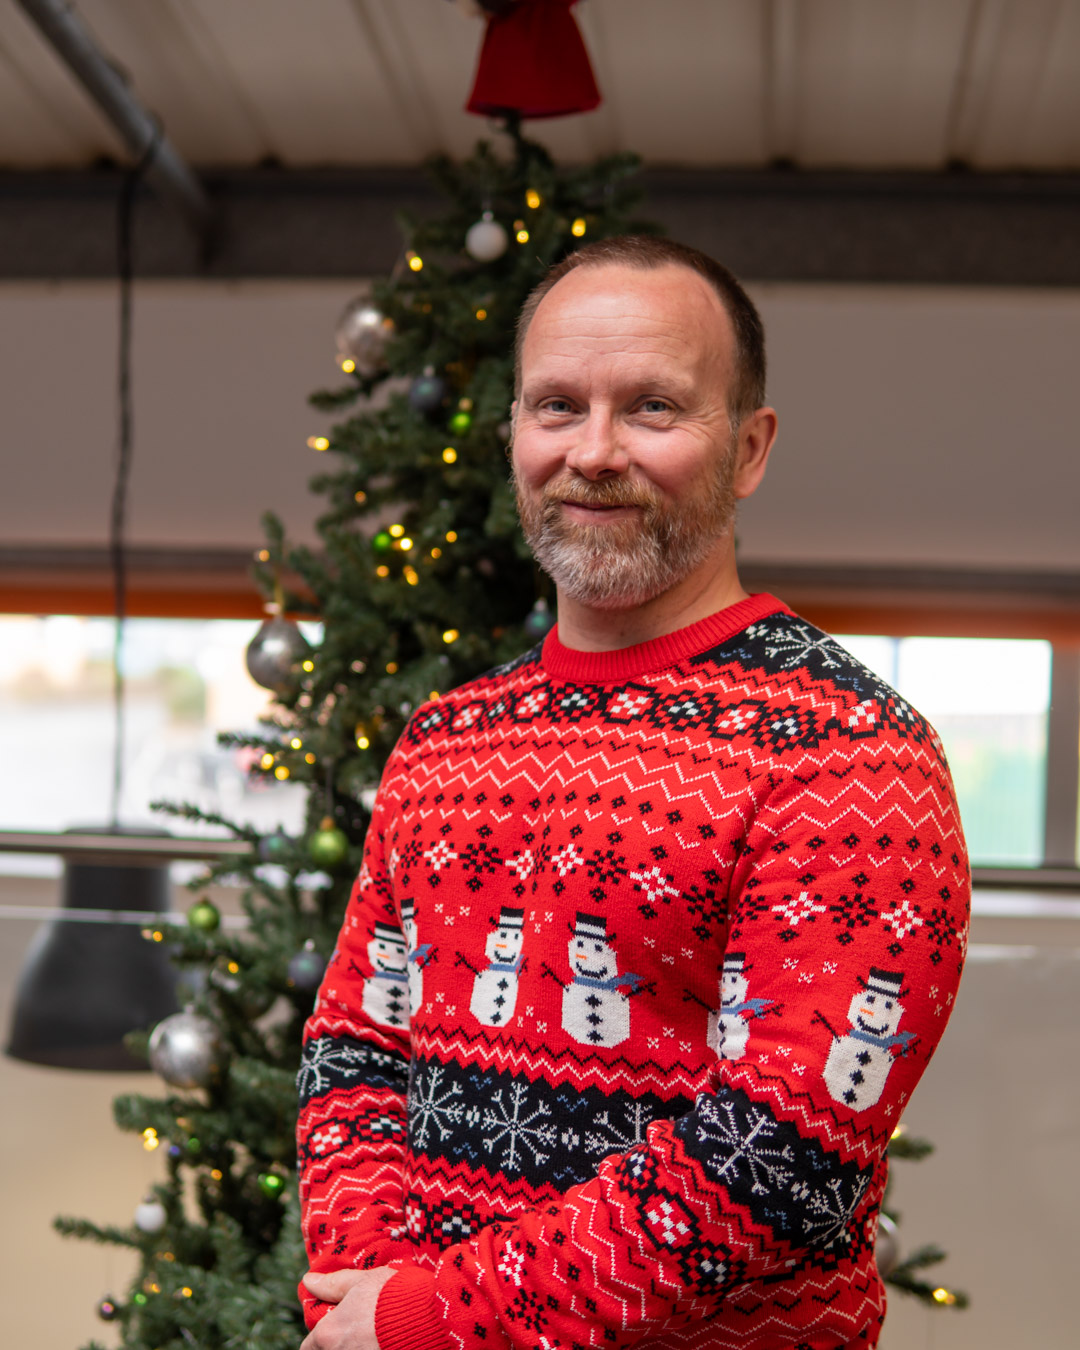 Christmas Jumper Day 2020: Paul wearing a snowman themed Christmas Jumper